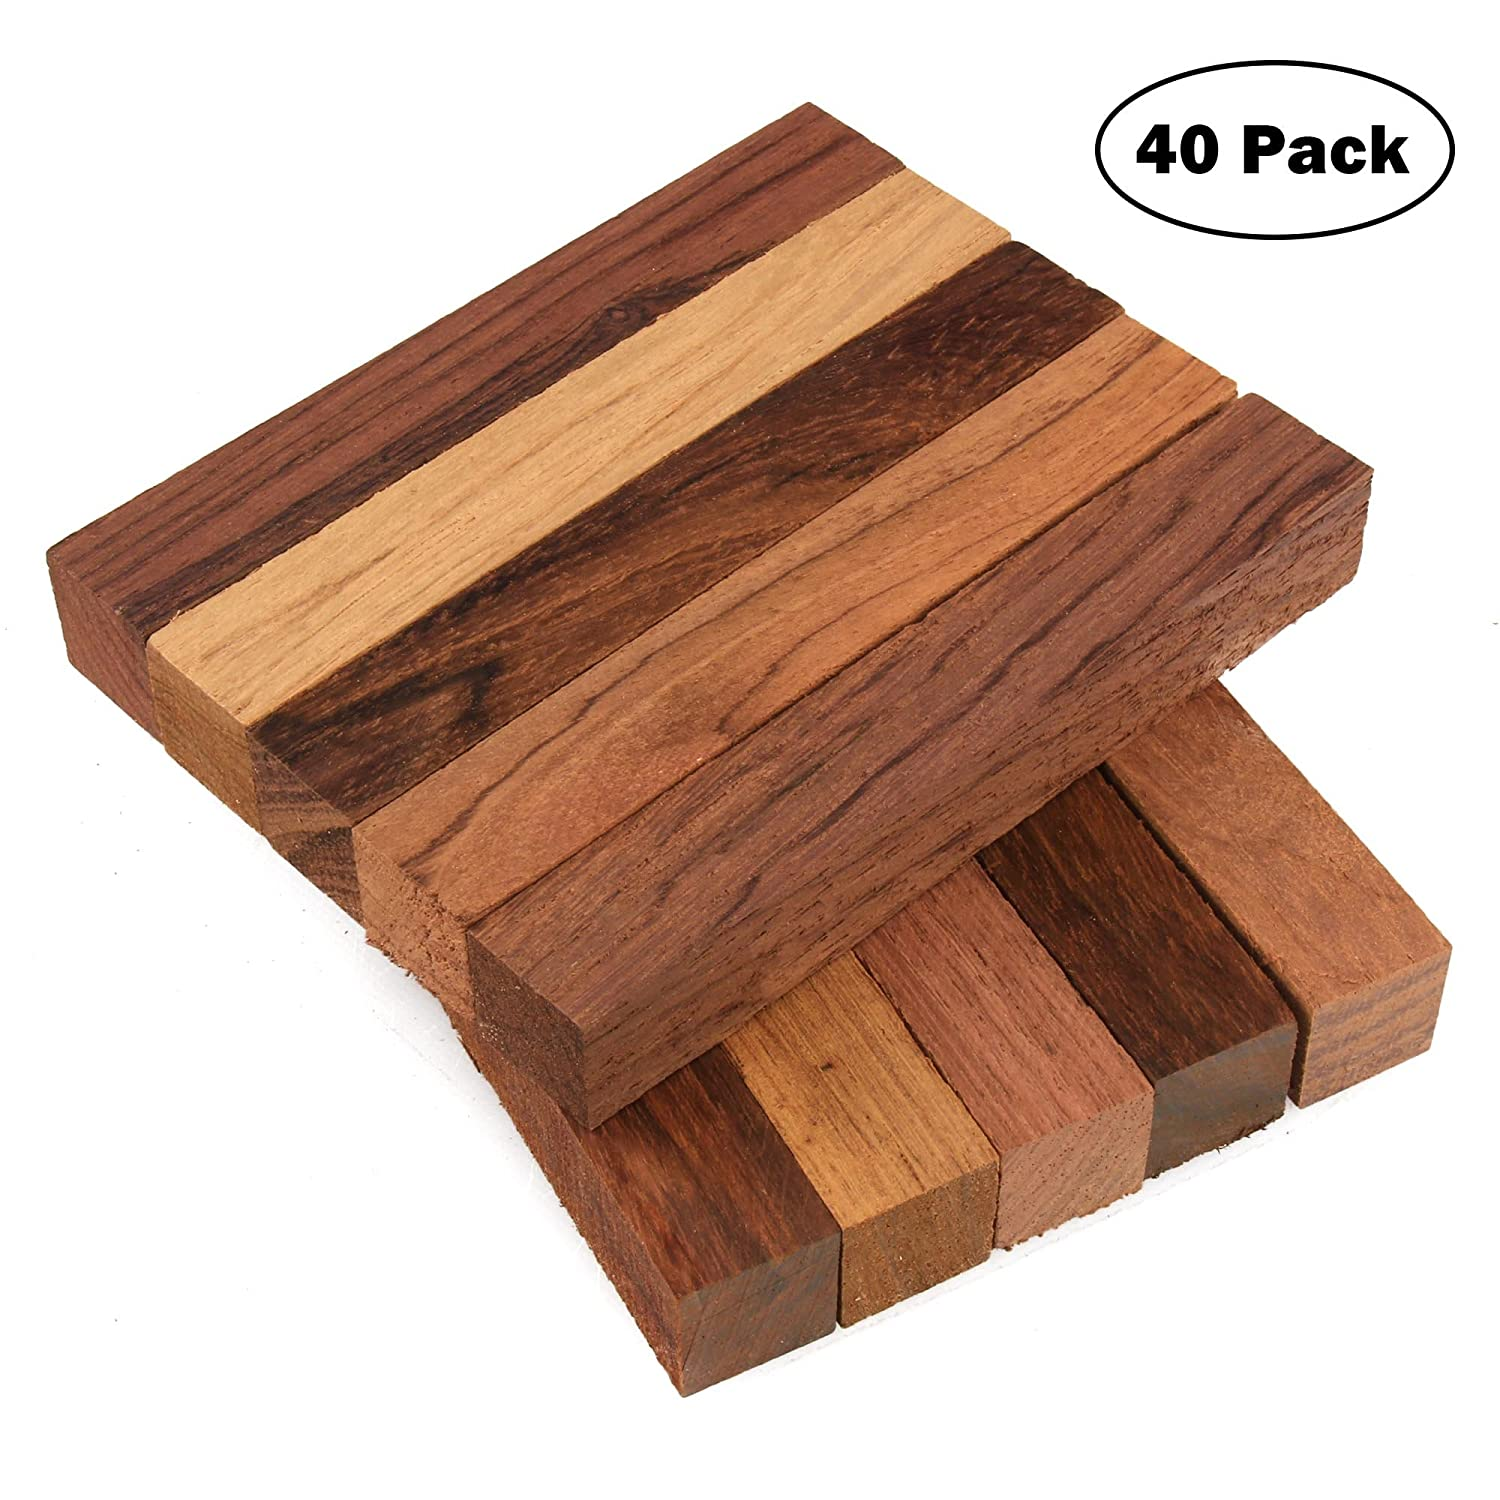 Pack of 40 3//4 x 3//4 x 5 Legacy Woodturning Dalbergia Wood Pen Blank